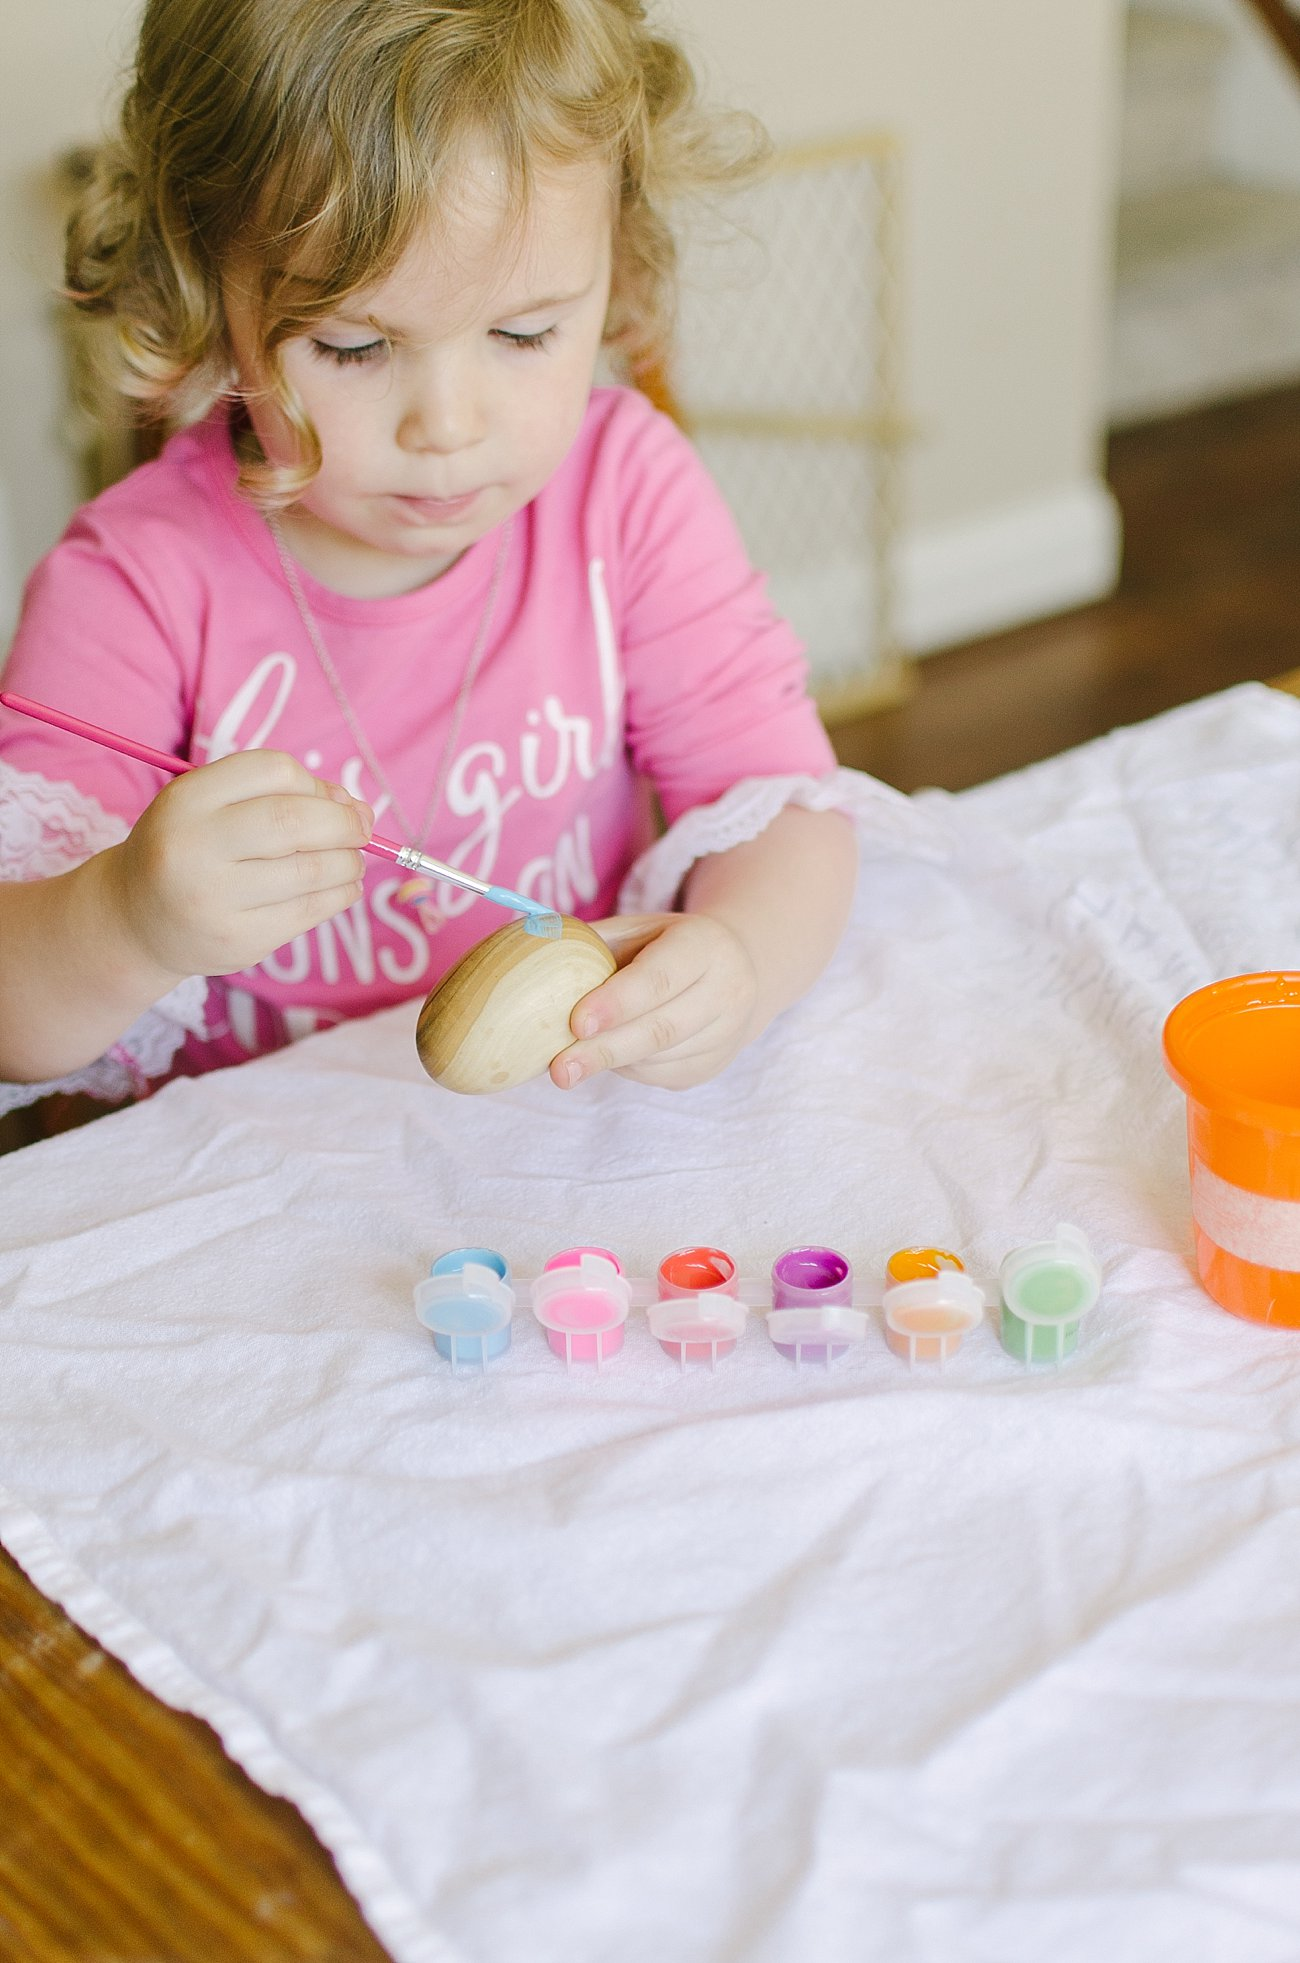 Easter Traditions with Kids - Painting Handmade Wooden Easter Eggs by lifestyle blogger Still Being Molly